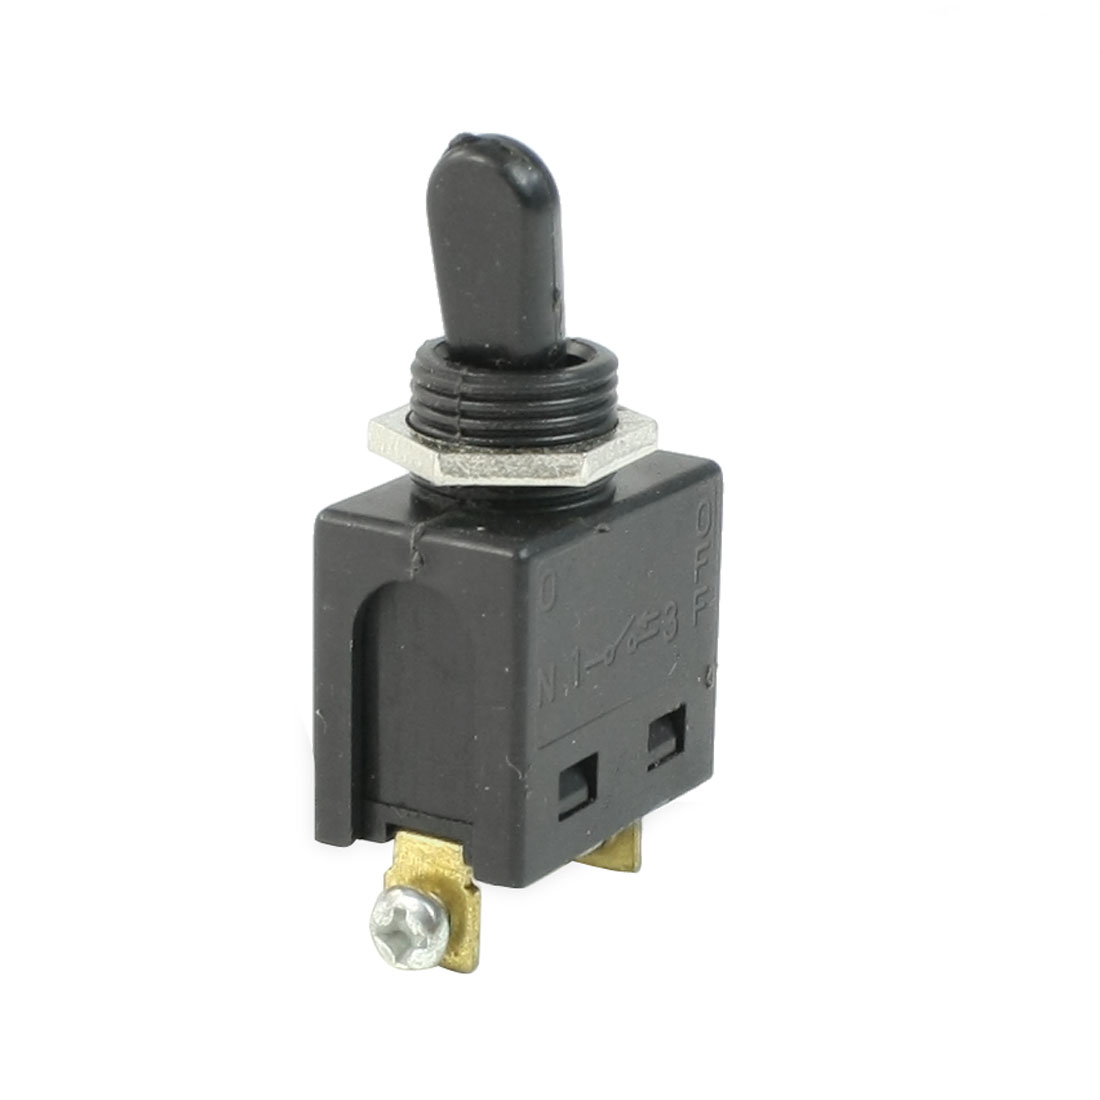 FD2-4/1W AC 250V 4A SPST NO 2 Positions ON/OFF Latching Toggle Switch